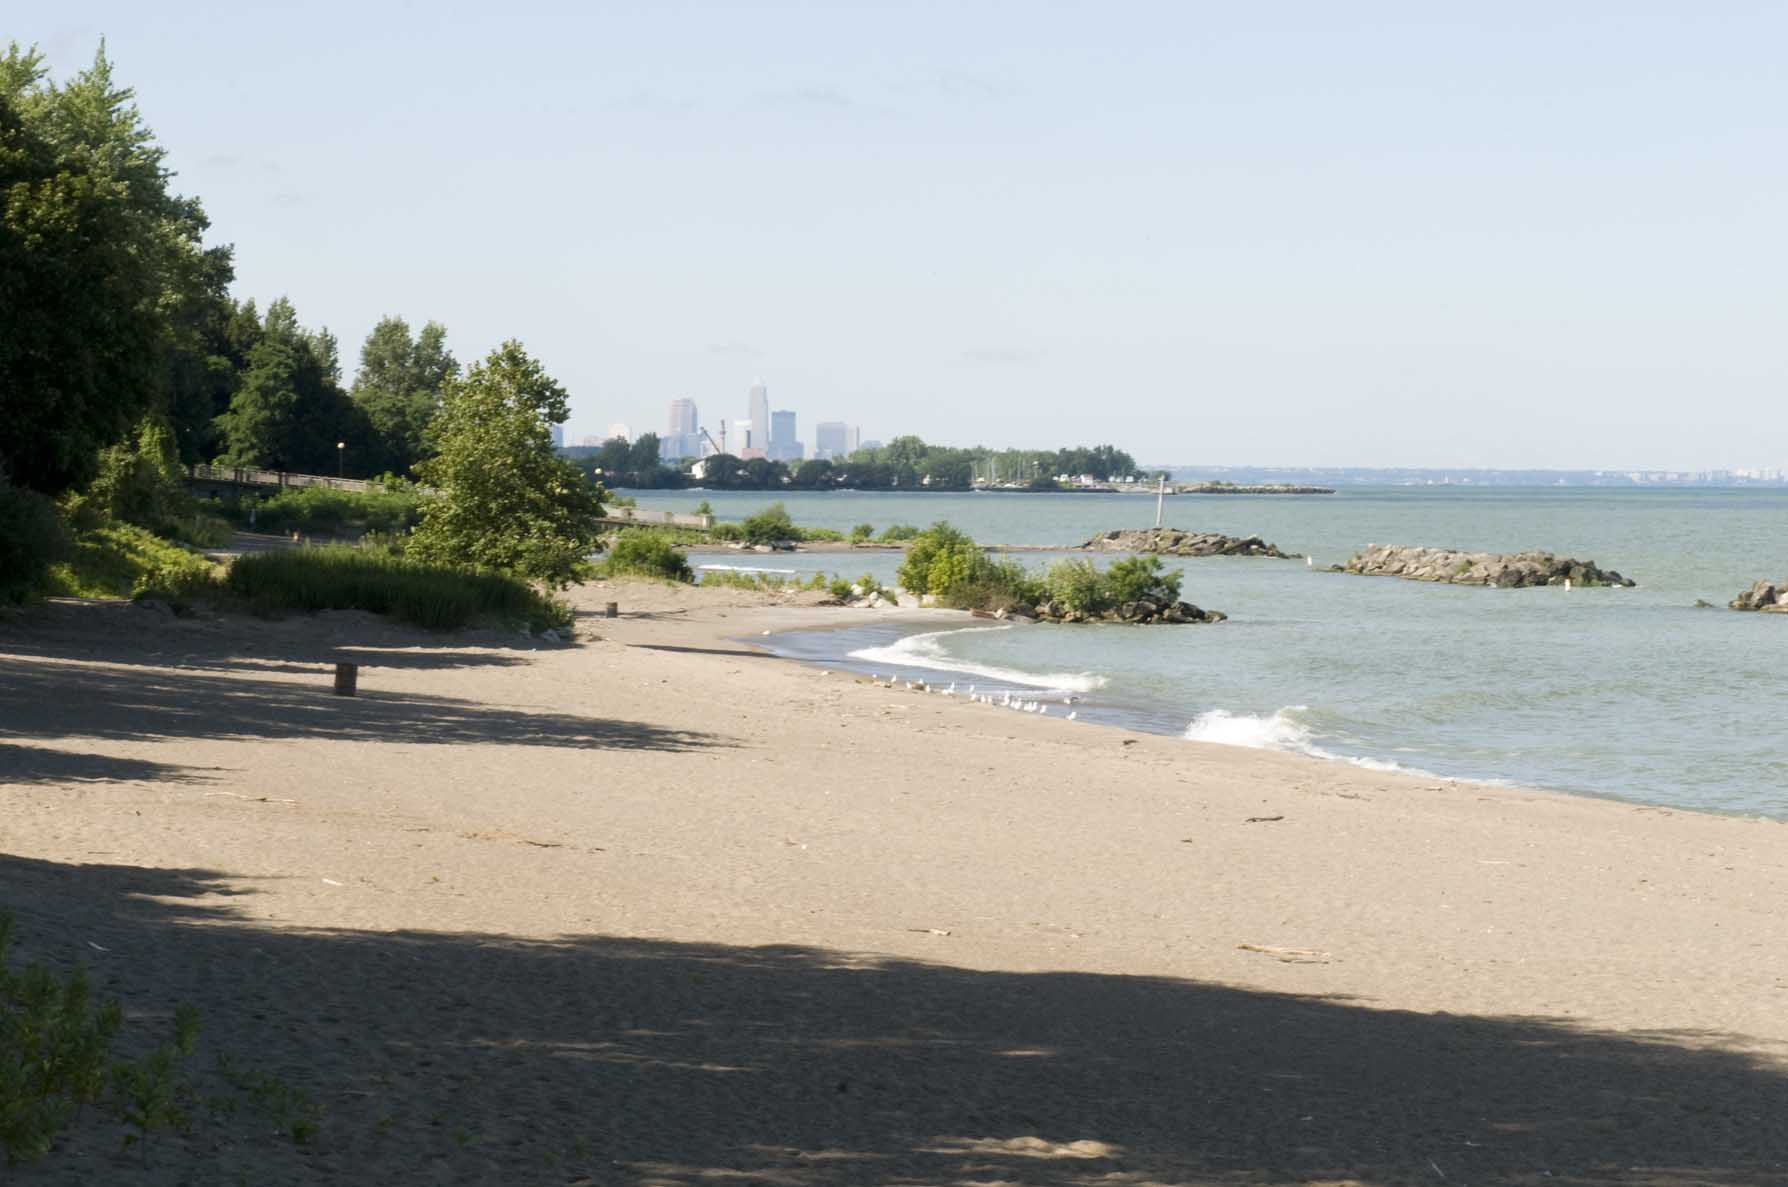 CLEVELAND METROPARKS HOSTS LAKEFRONT COMMUNITY MEETINGS